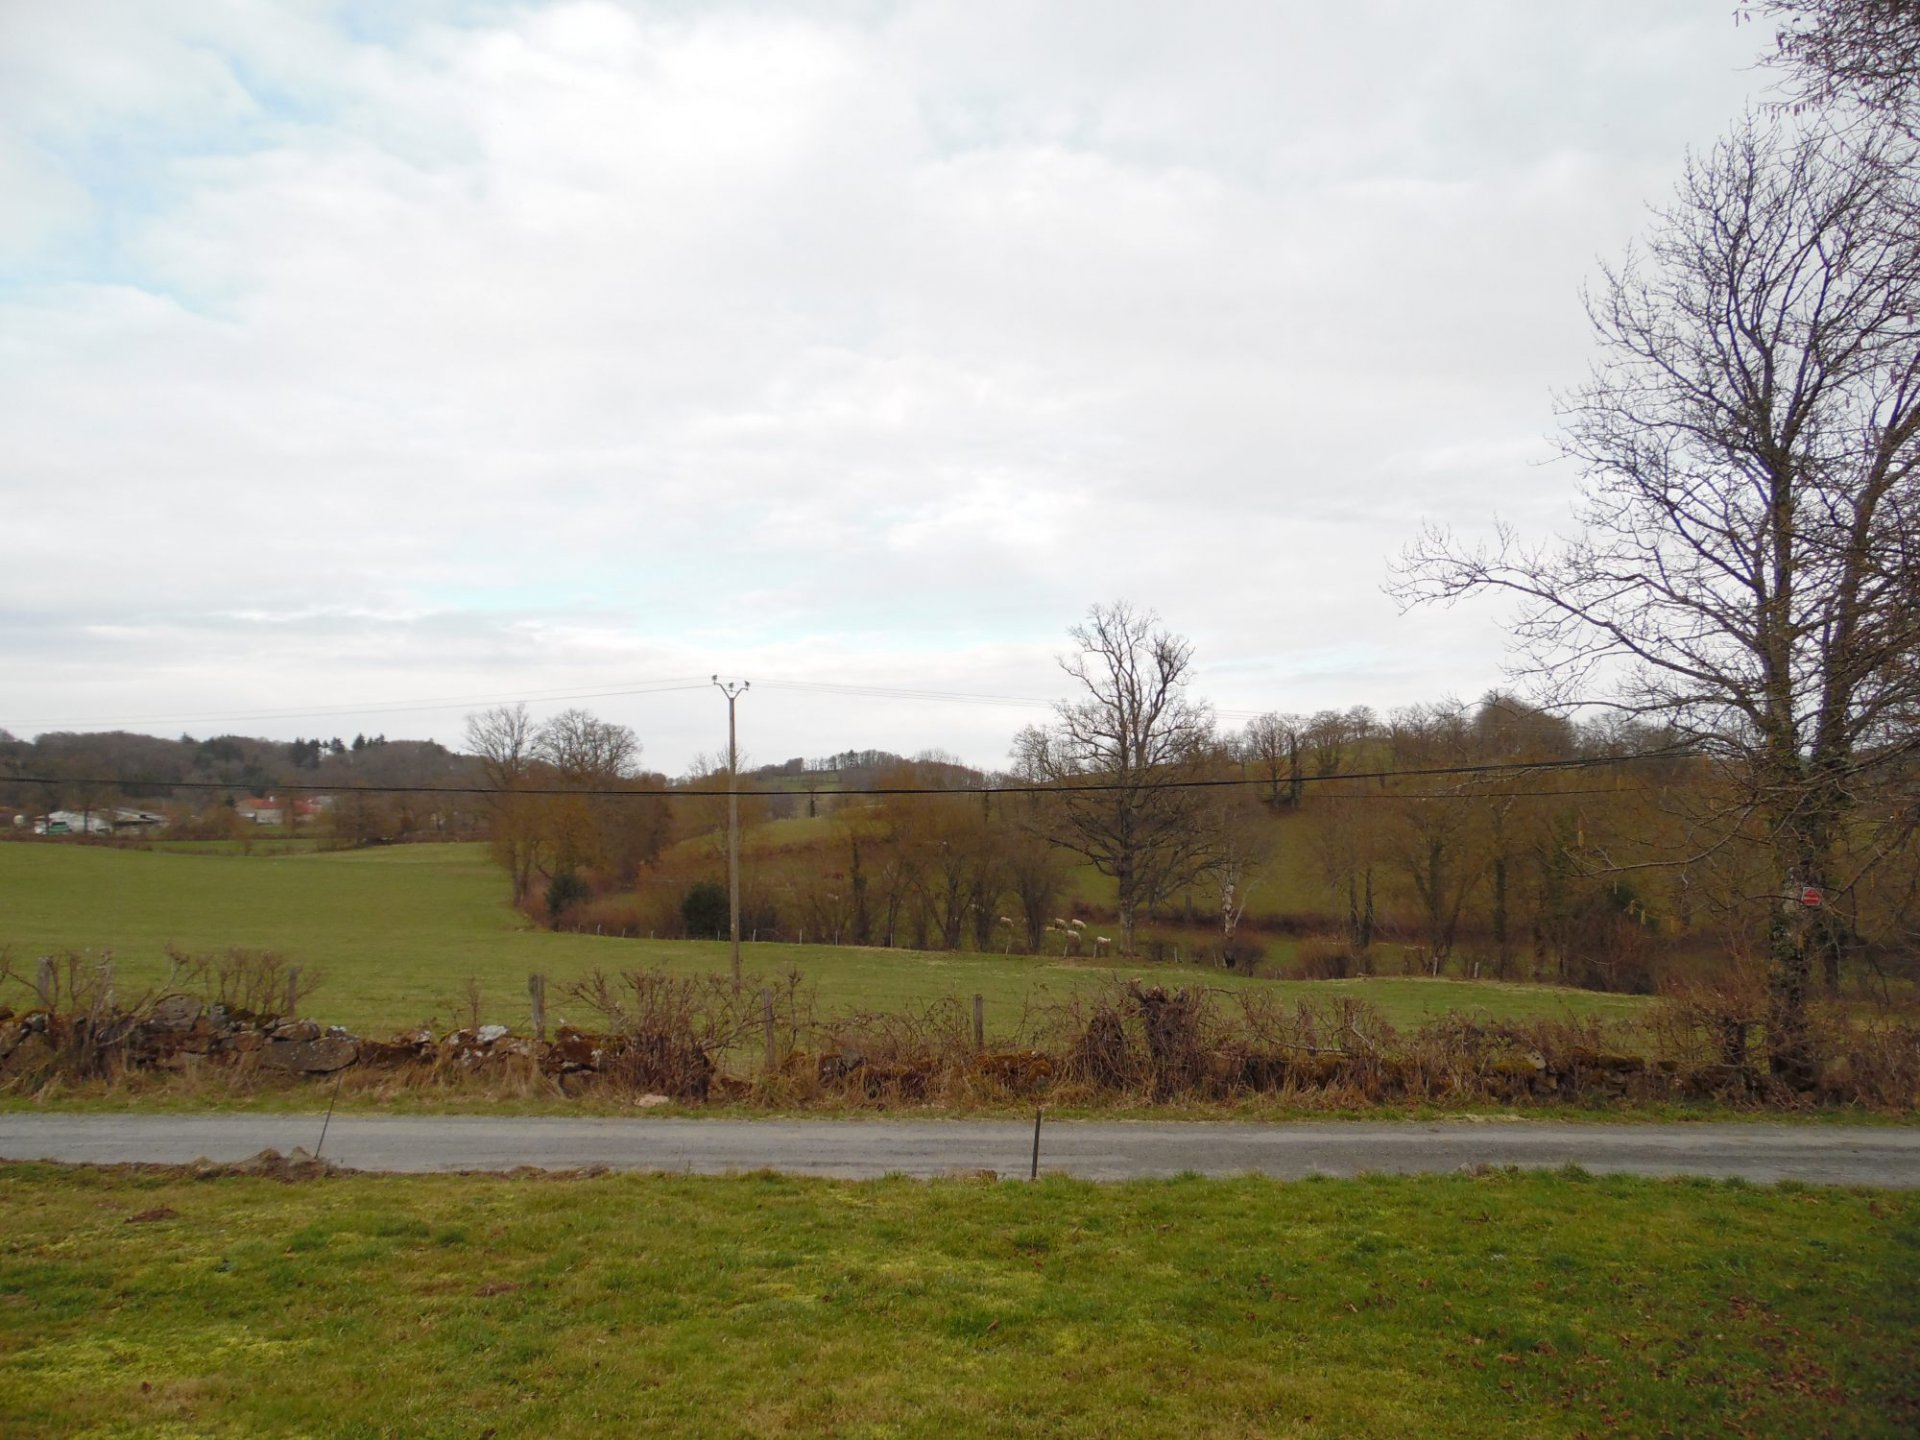 For sale in the Creuse, barn, nice view, 1600m² of land.